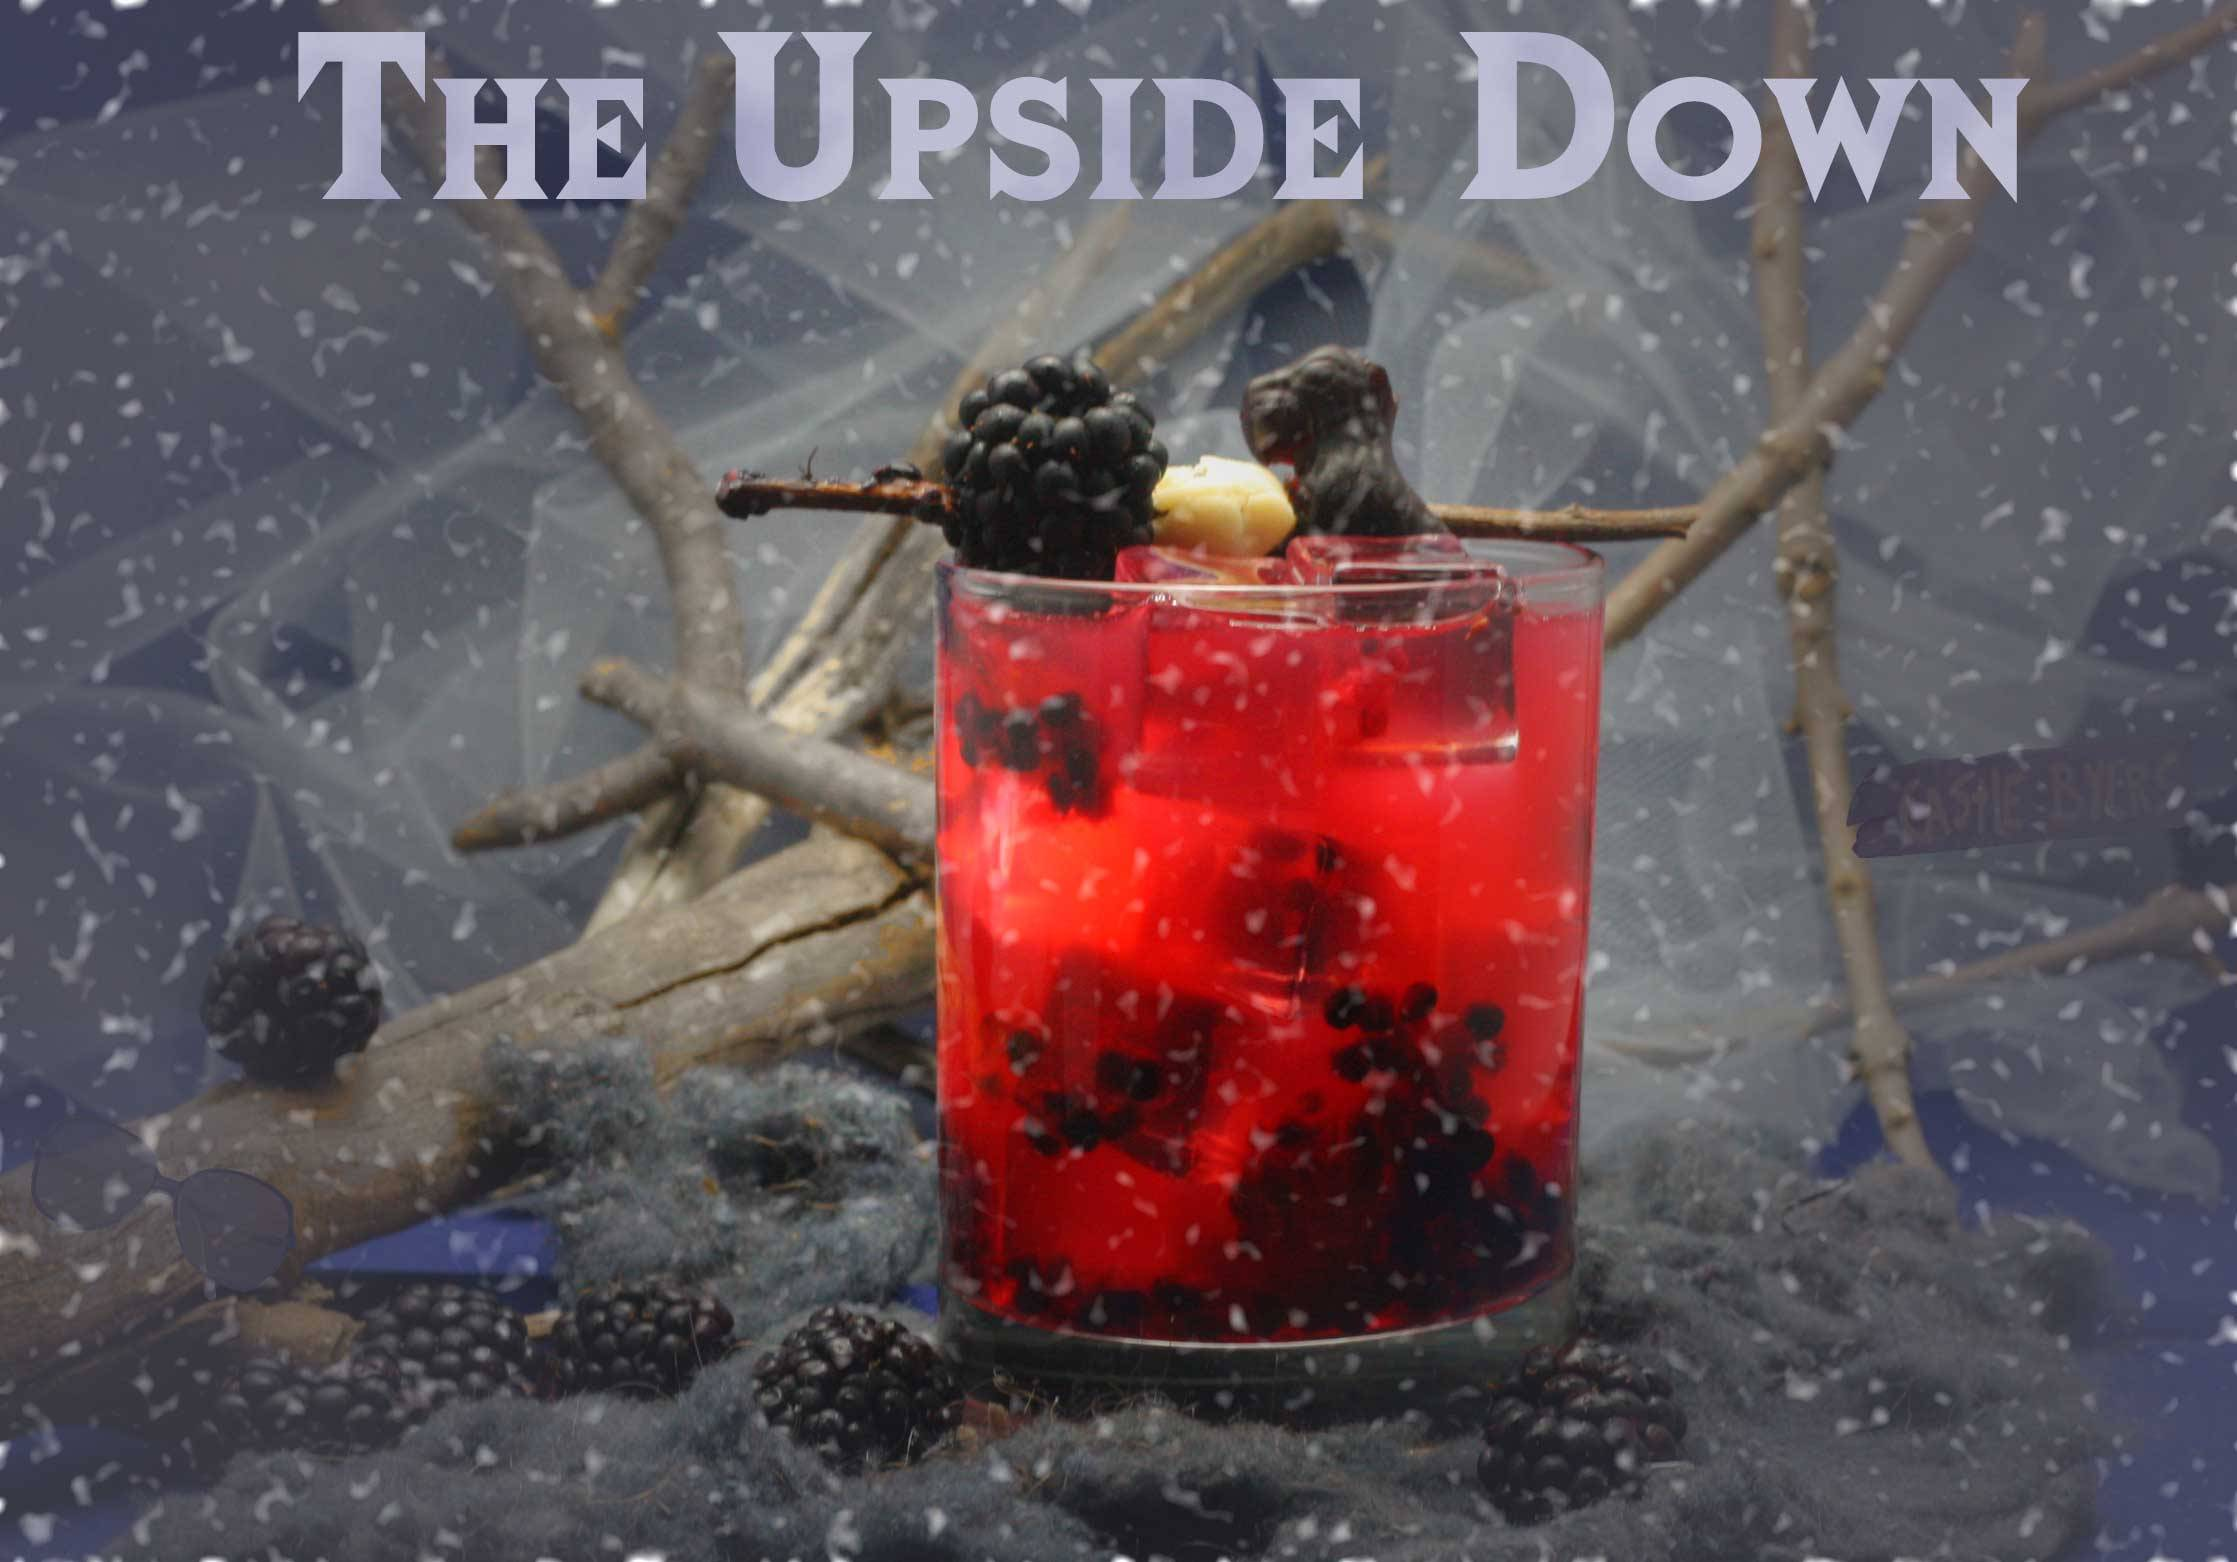 The Upside Down (Cocktail)